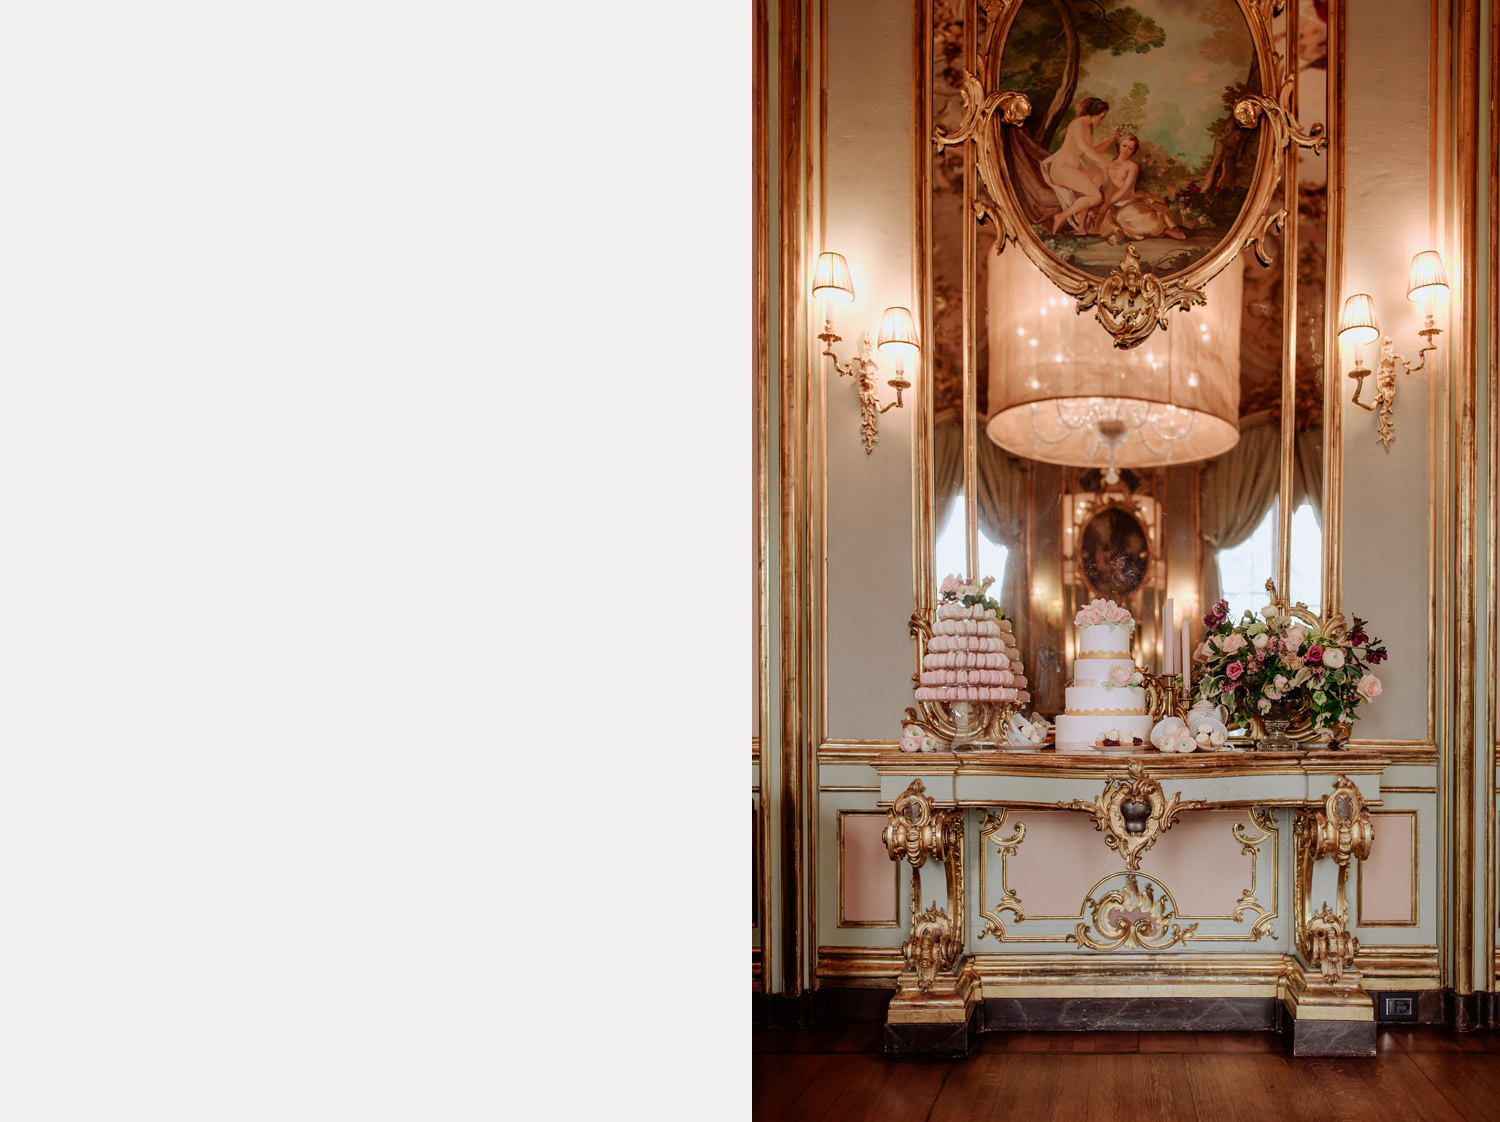 florence-luxury-wedding-photography-Villa-Cora-elopement-bride-g